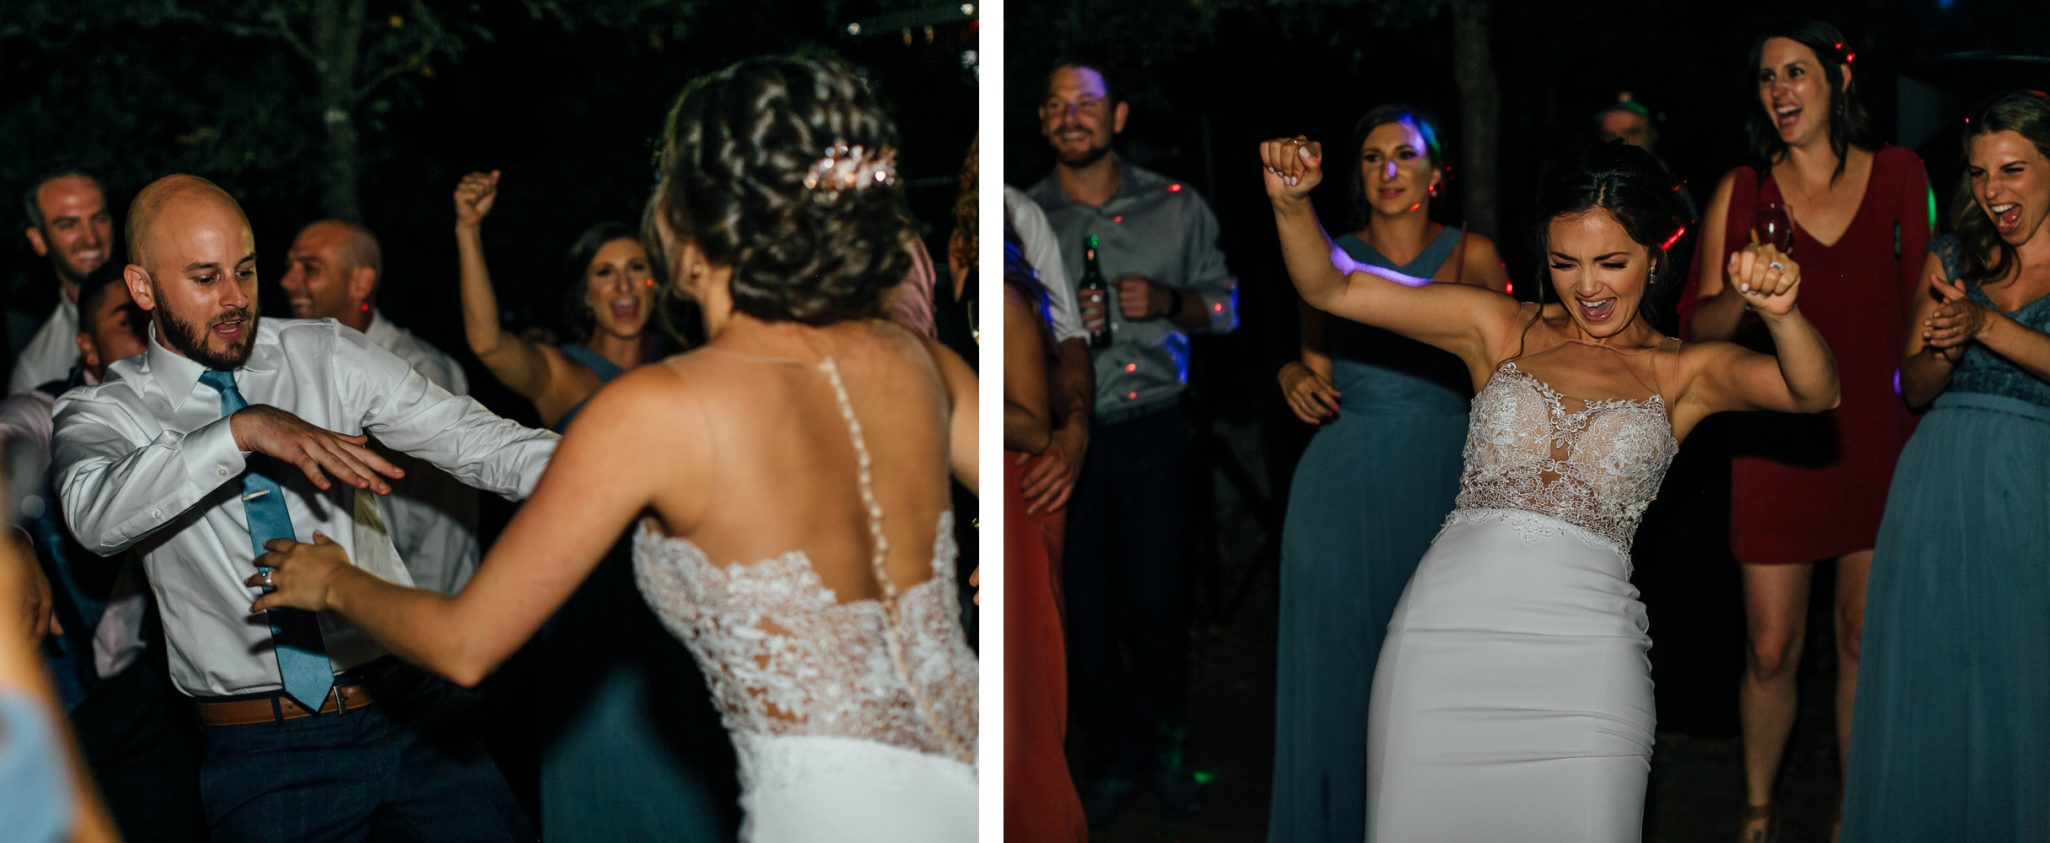 dance party at a Napa Valley wedding